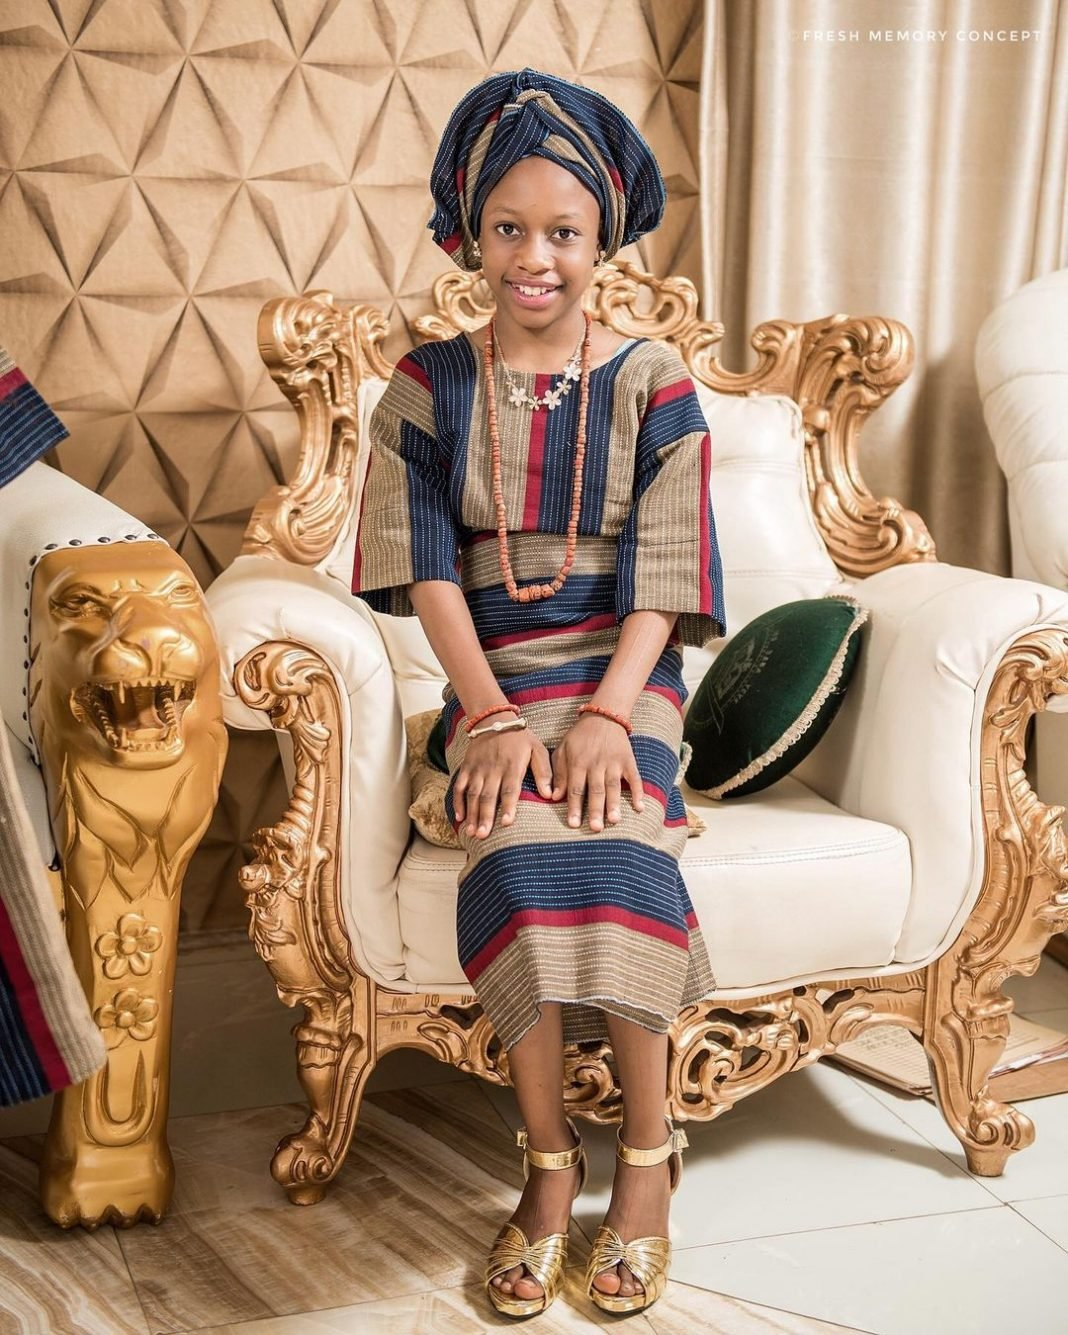 Alaafin of Oyo's wife Queen Folashade celebrates her triplets on 12th birthday (Pics)